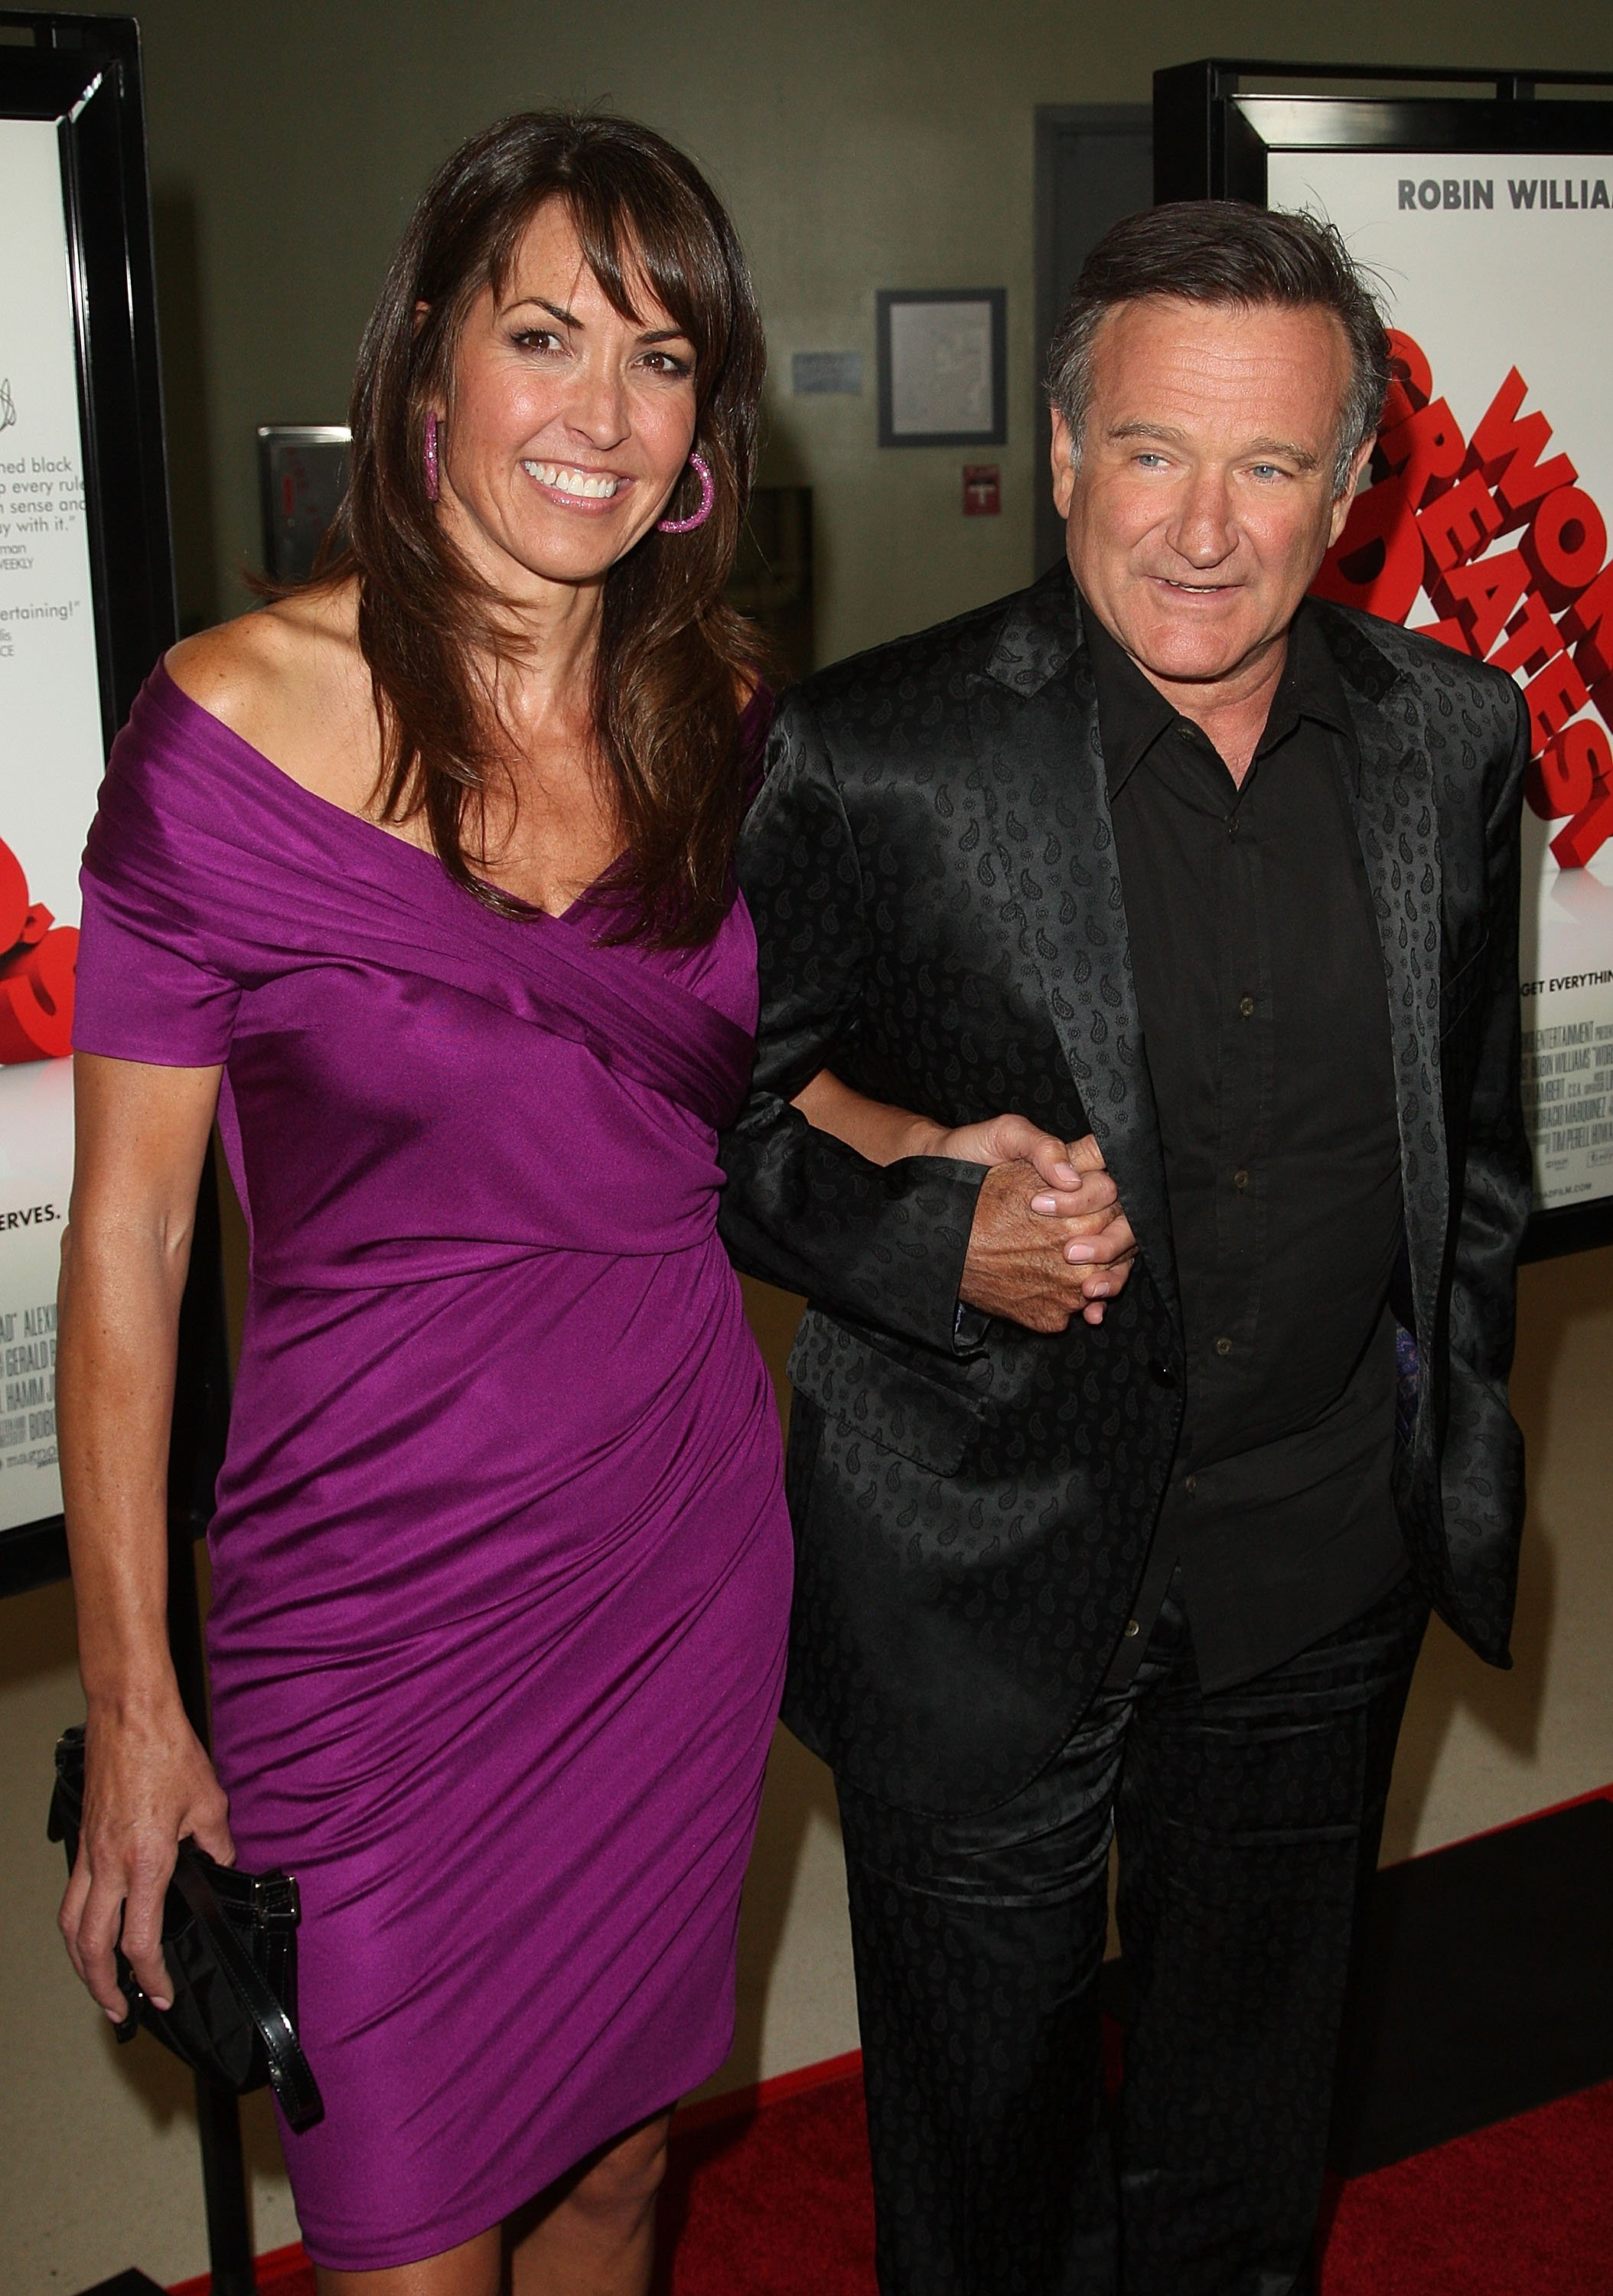 Robin Williams and Susan Schneider on August 13, 2009 in Los Angeles, California   Photo: Getty Images